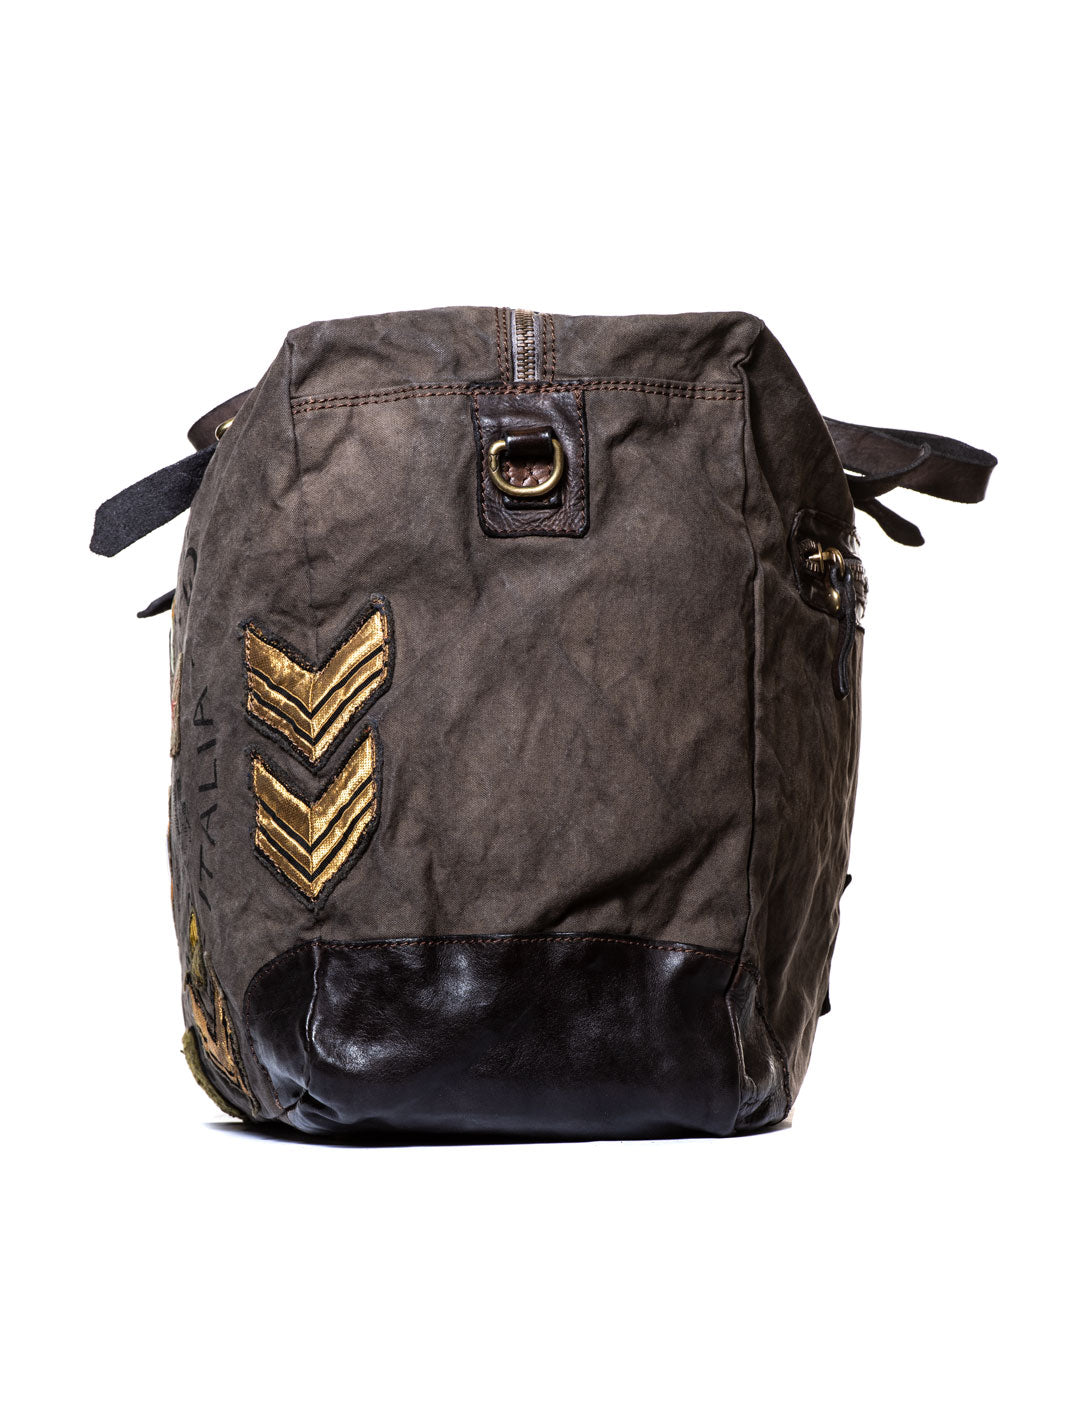 CA1B3 TRADITIONAL BAG IN DARK GREY